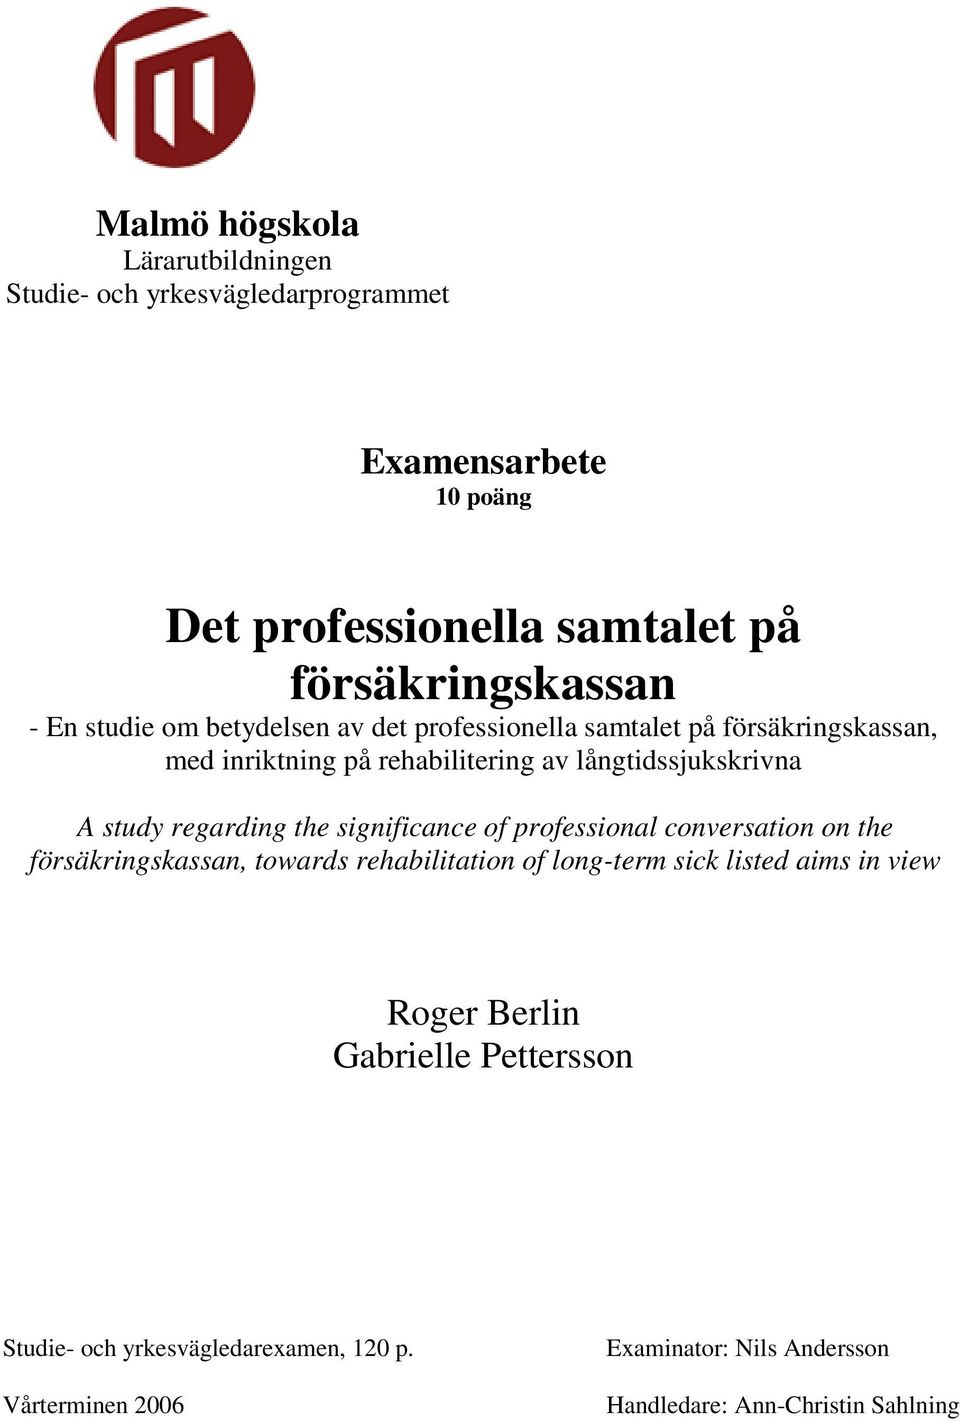 regarding the significance of professional conversation on the försäkringskassan, towards rehabilitation of long-term sick listed aims in view